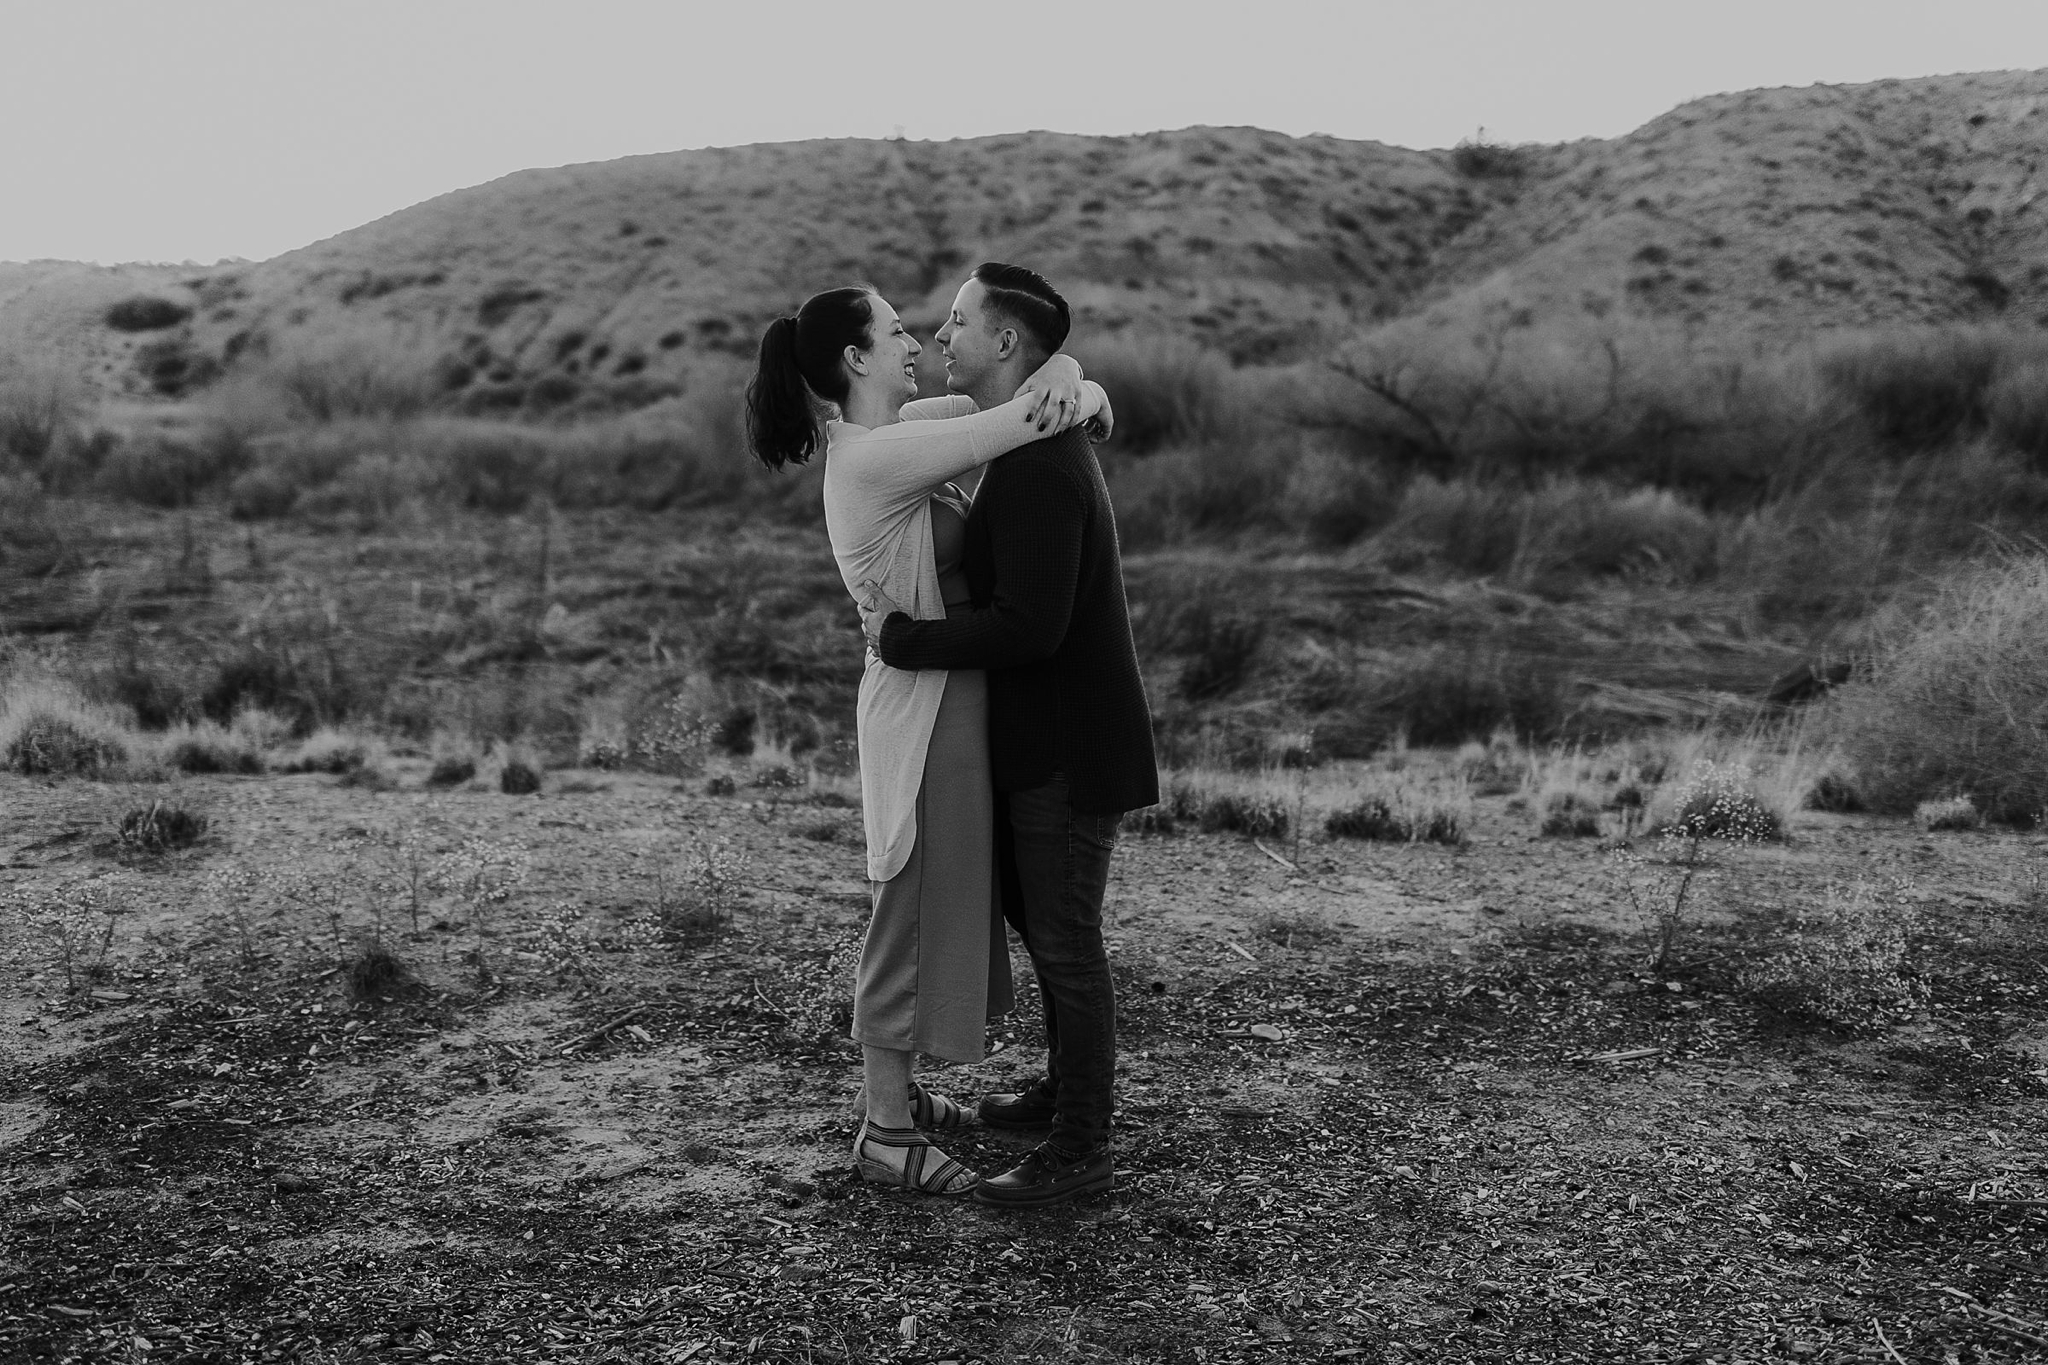 Alicia+lucia+photography+-+albuquerque+wedding+photographer+-+santa+fe+wedding+photography+-+new+mexico+wedding+photographer+-+new+mexico+wedding+-+engagement+-+new+mexico+engagemnt+-+outdoor+engagement_0018.jpg